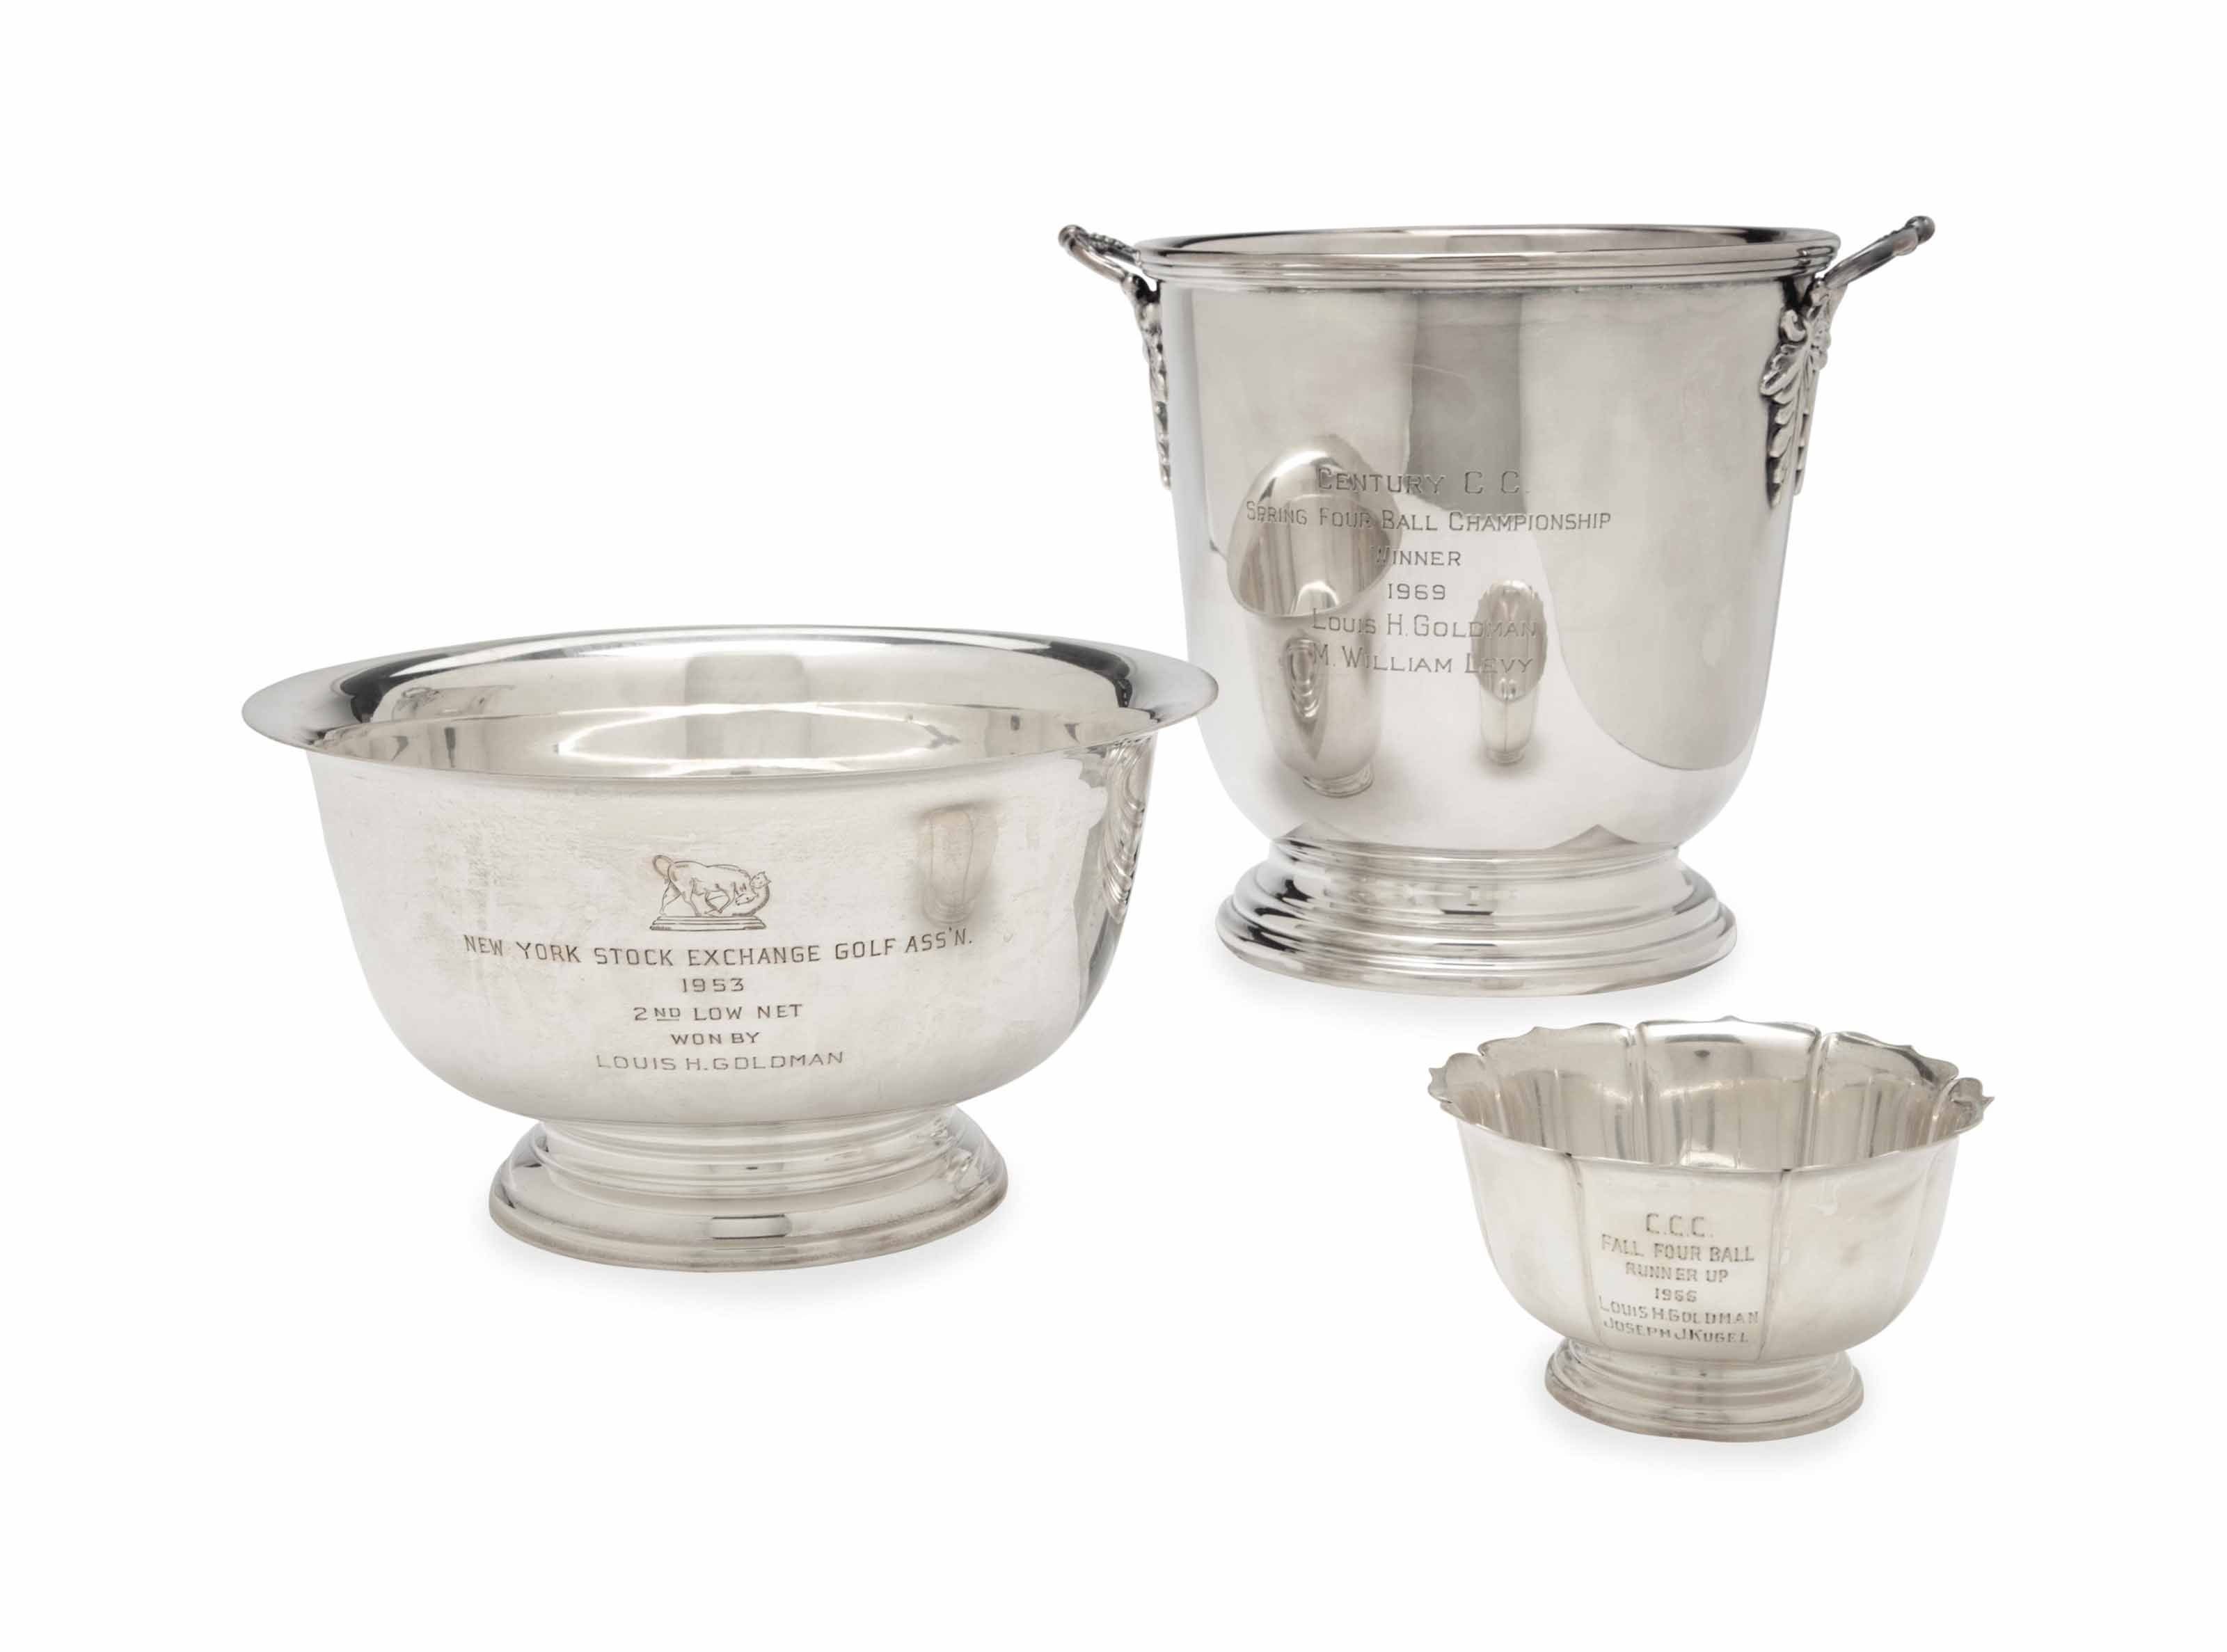 A GROUP OF ENGLISH AND AMERICAN SILVER AND SILVER-PLATE SPORTING TROPHIES,